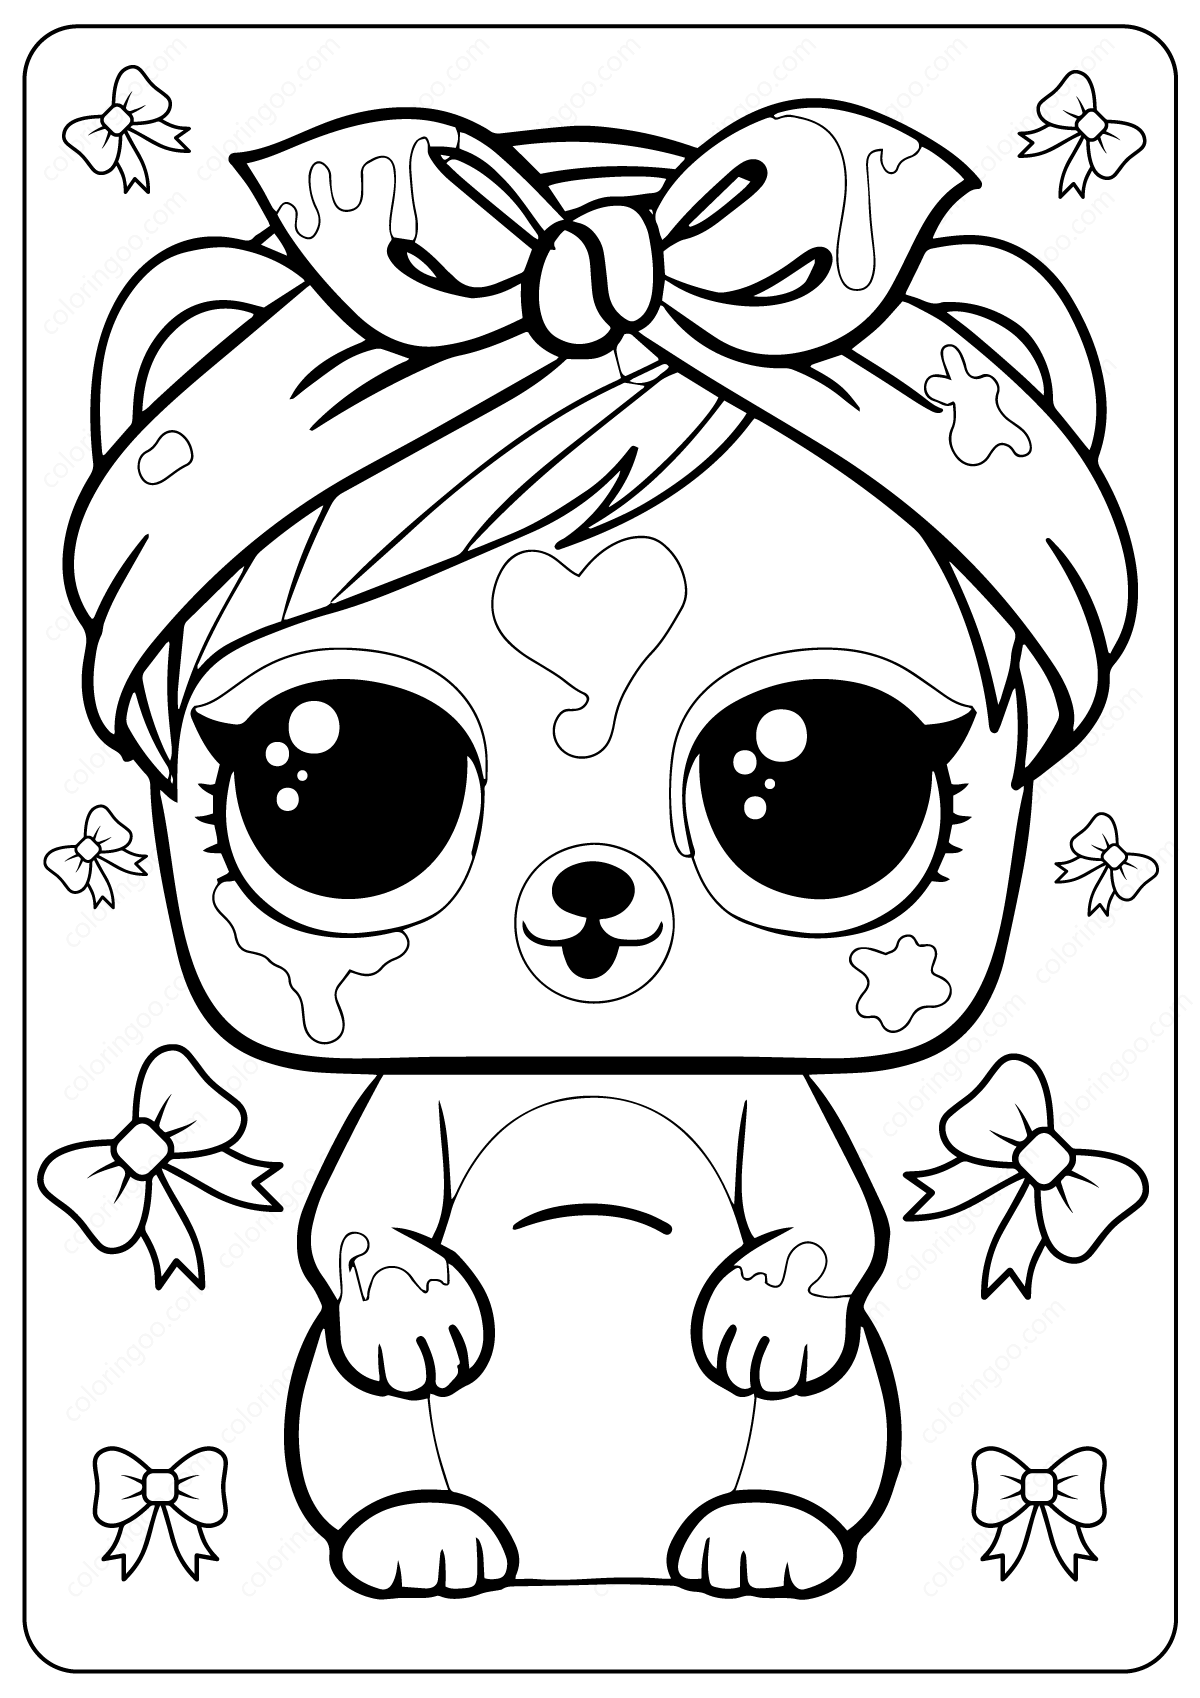 Free Printable Lol Surprise Coloring Pages Fairy Coloring Pages Unicorn Coloring Pages Baby Coloring Pages